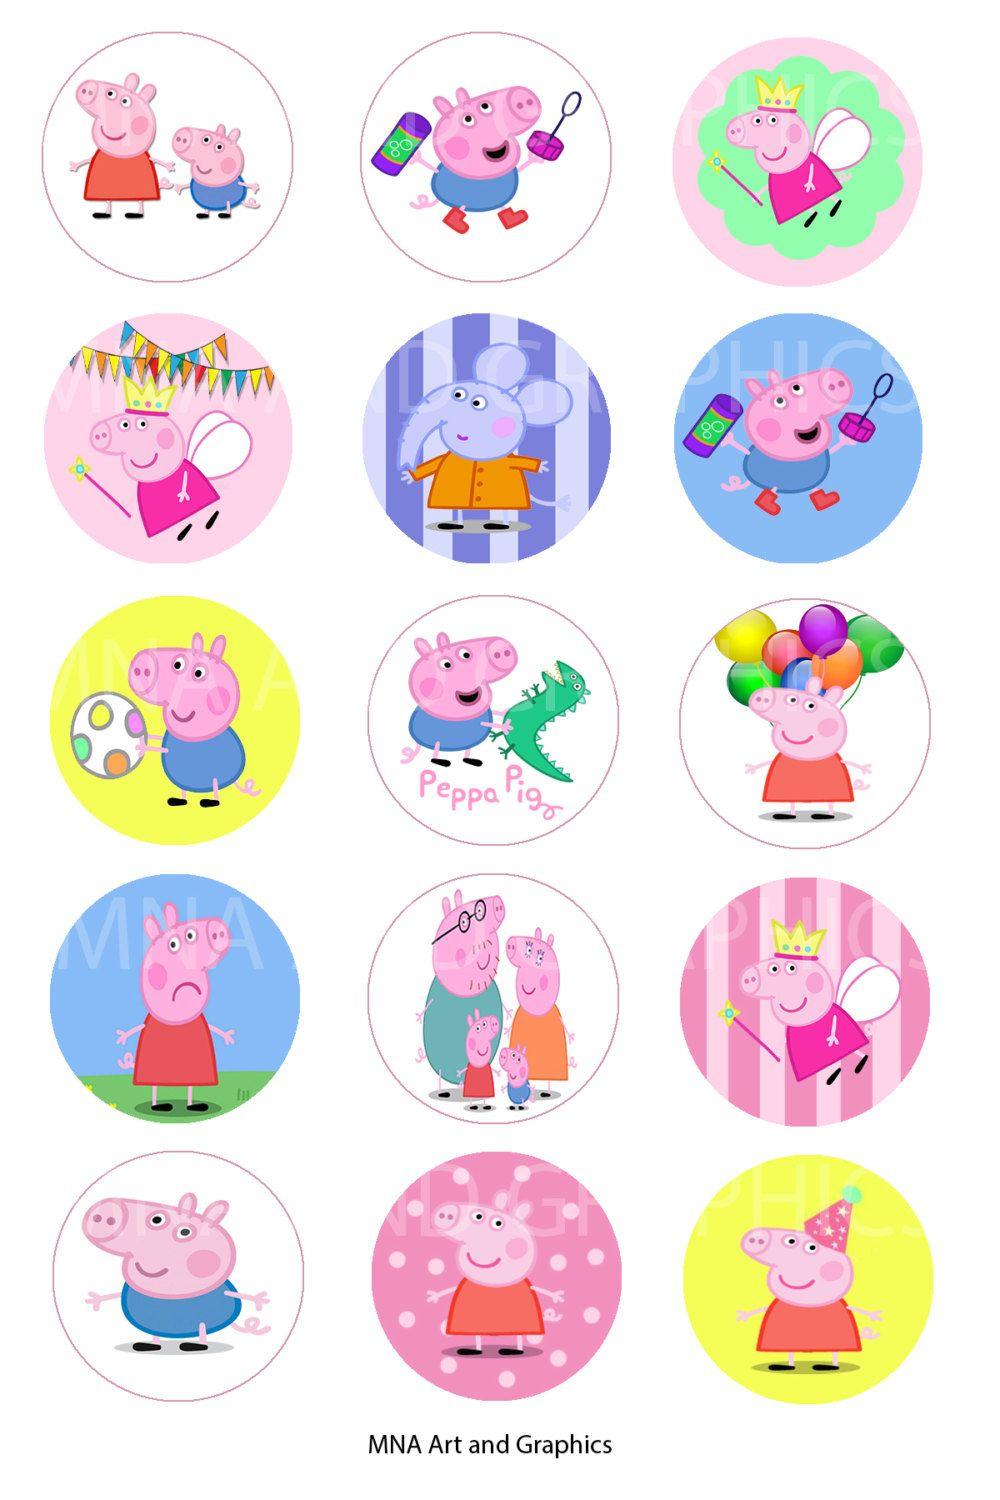 1 Inch Round Bottle Cap Images Peppa Pig - Images Collage Sheet 4X6 - Peppa Pig Character Free Printable Images